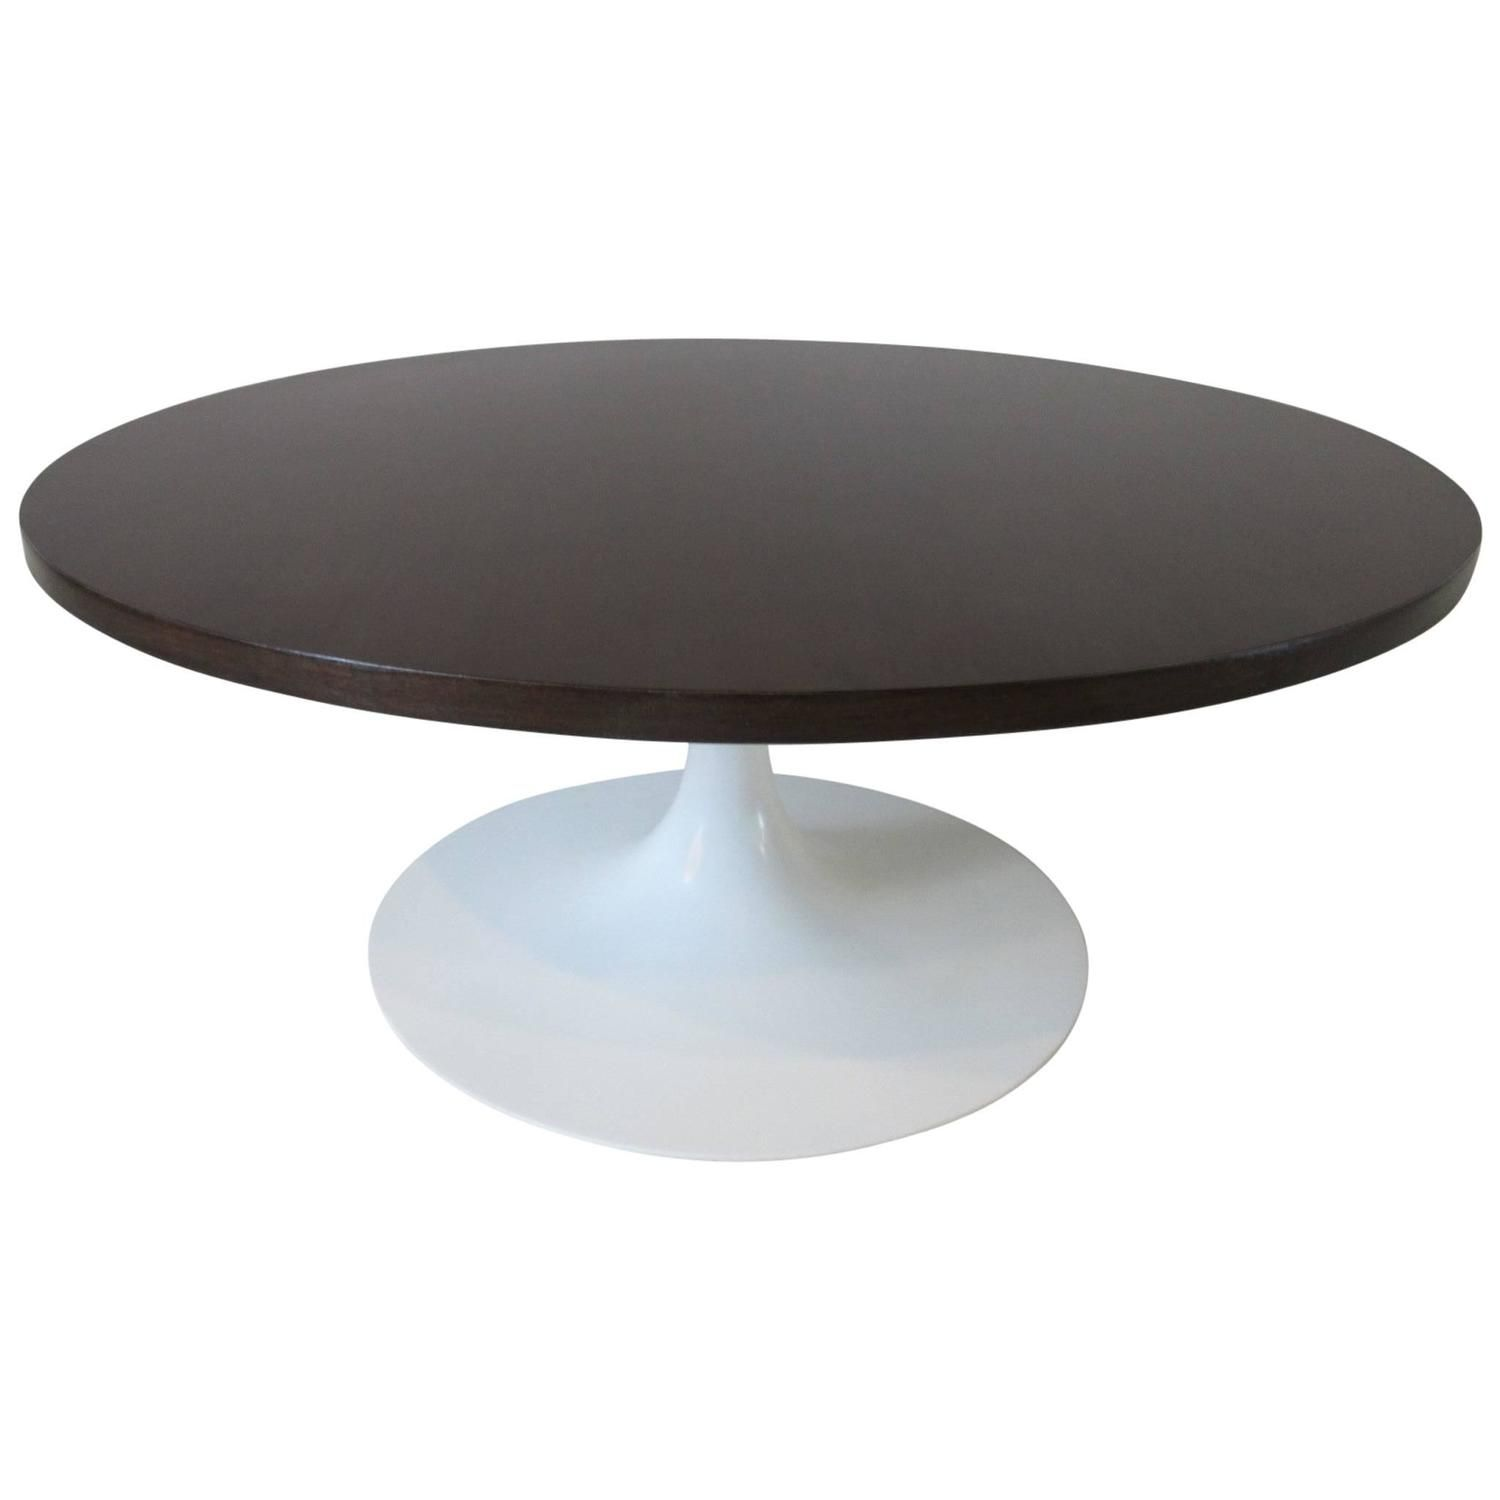 38+ Tulip coffee table base inspirations